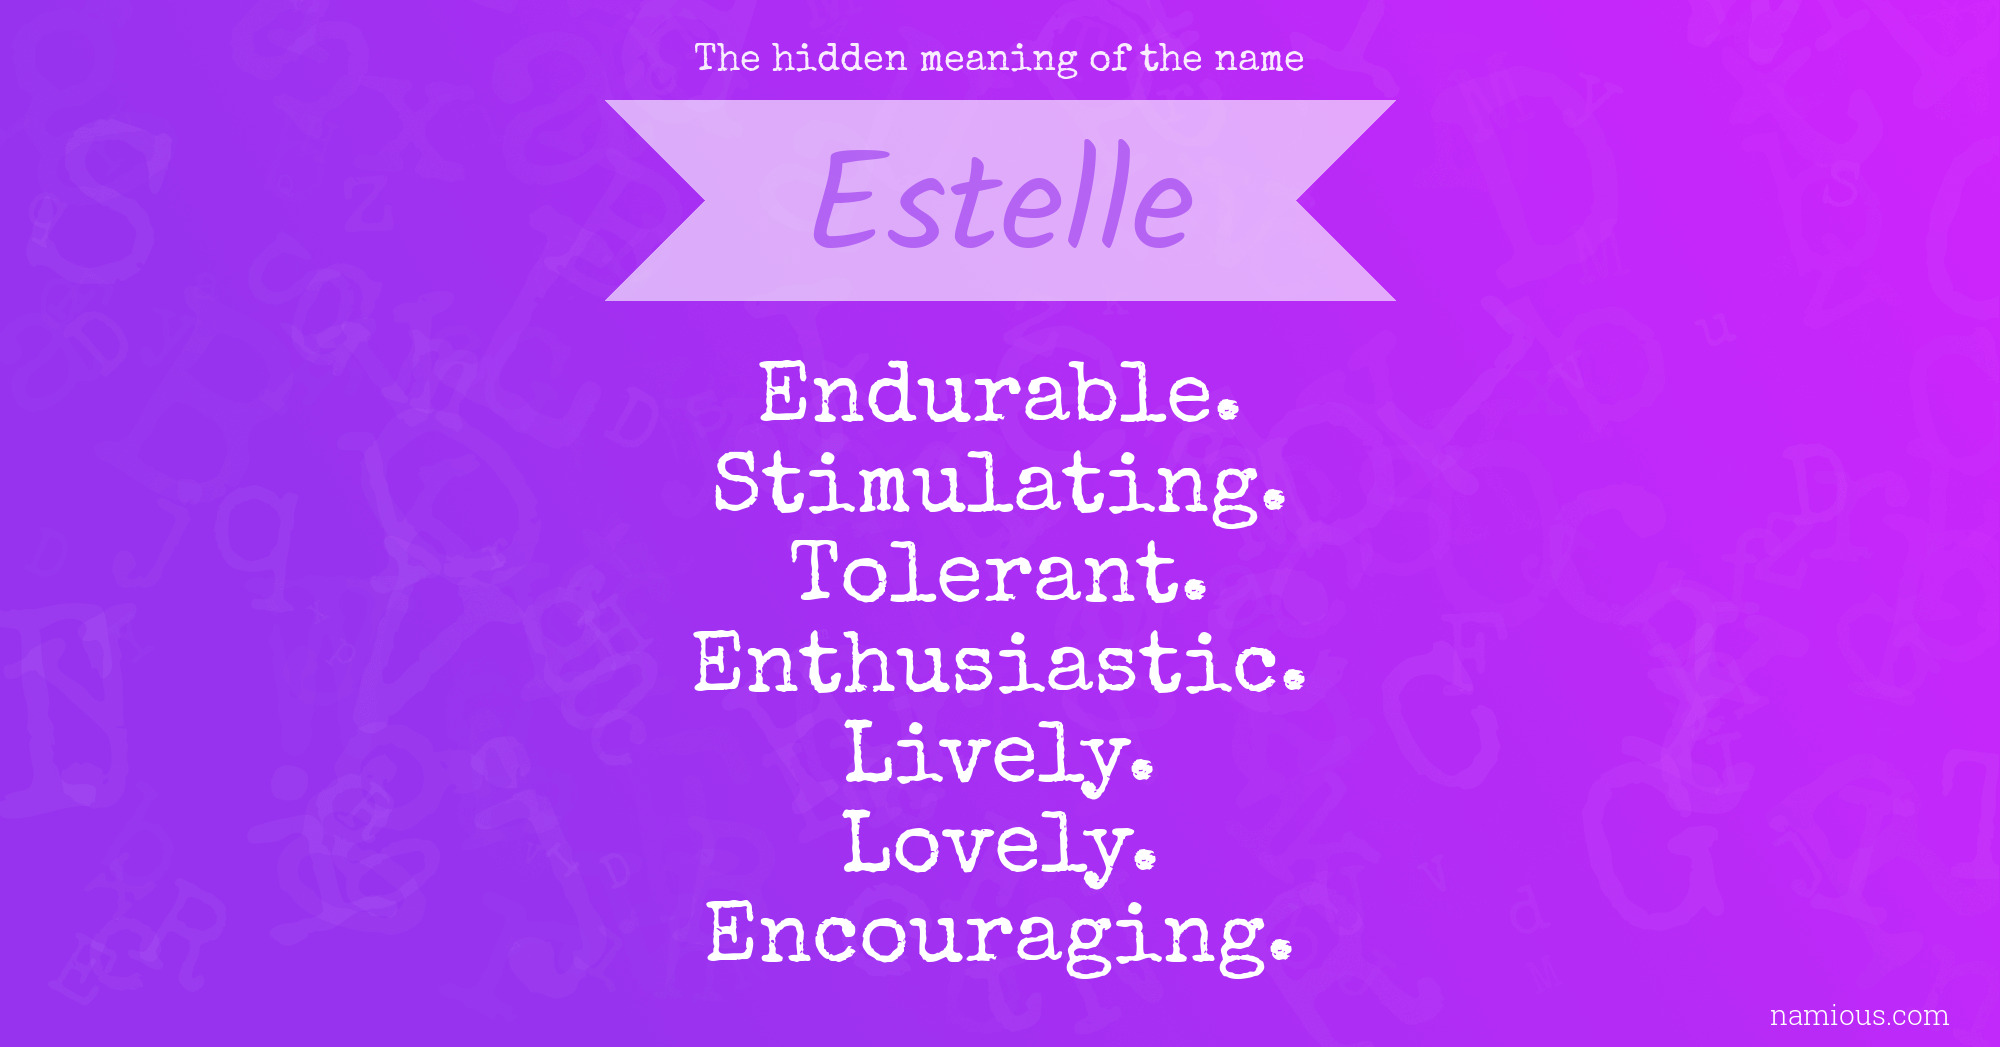 The hidden meaning of the name Estelle | Namious